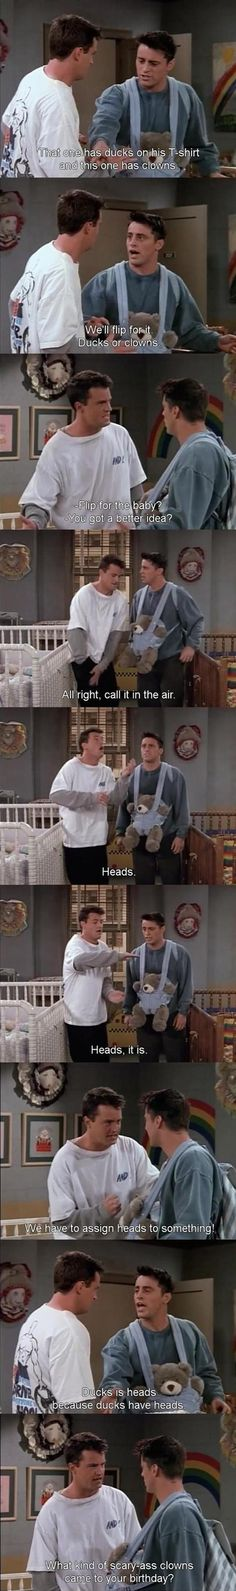 This was absolutely my favorite scene from Friends..and I have seen every episode. I laughed until I cried when I first heard that last line..